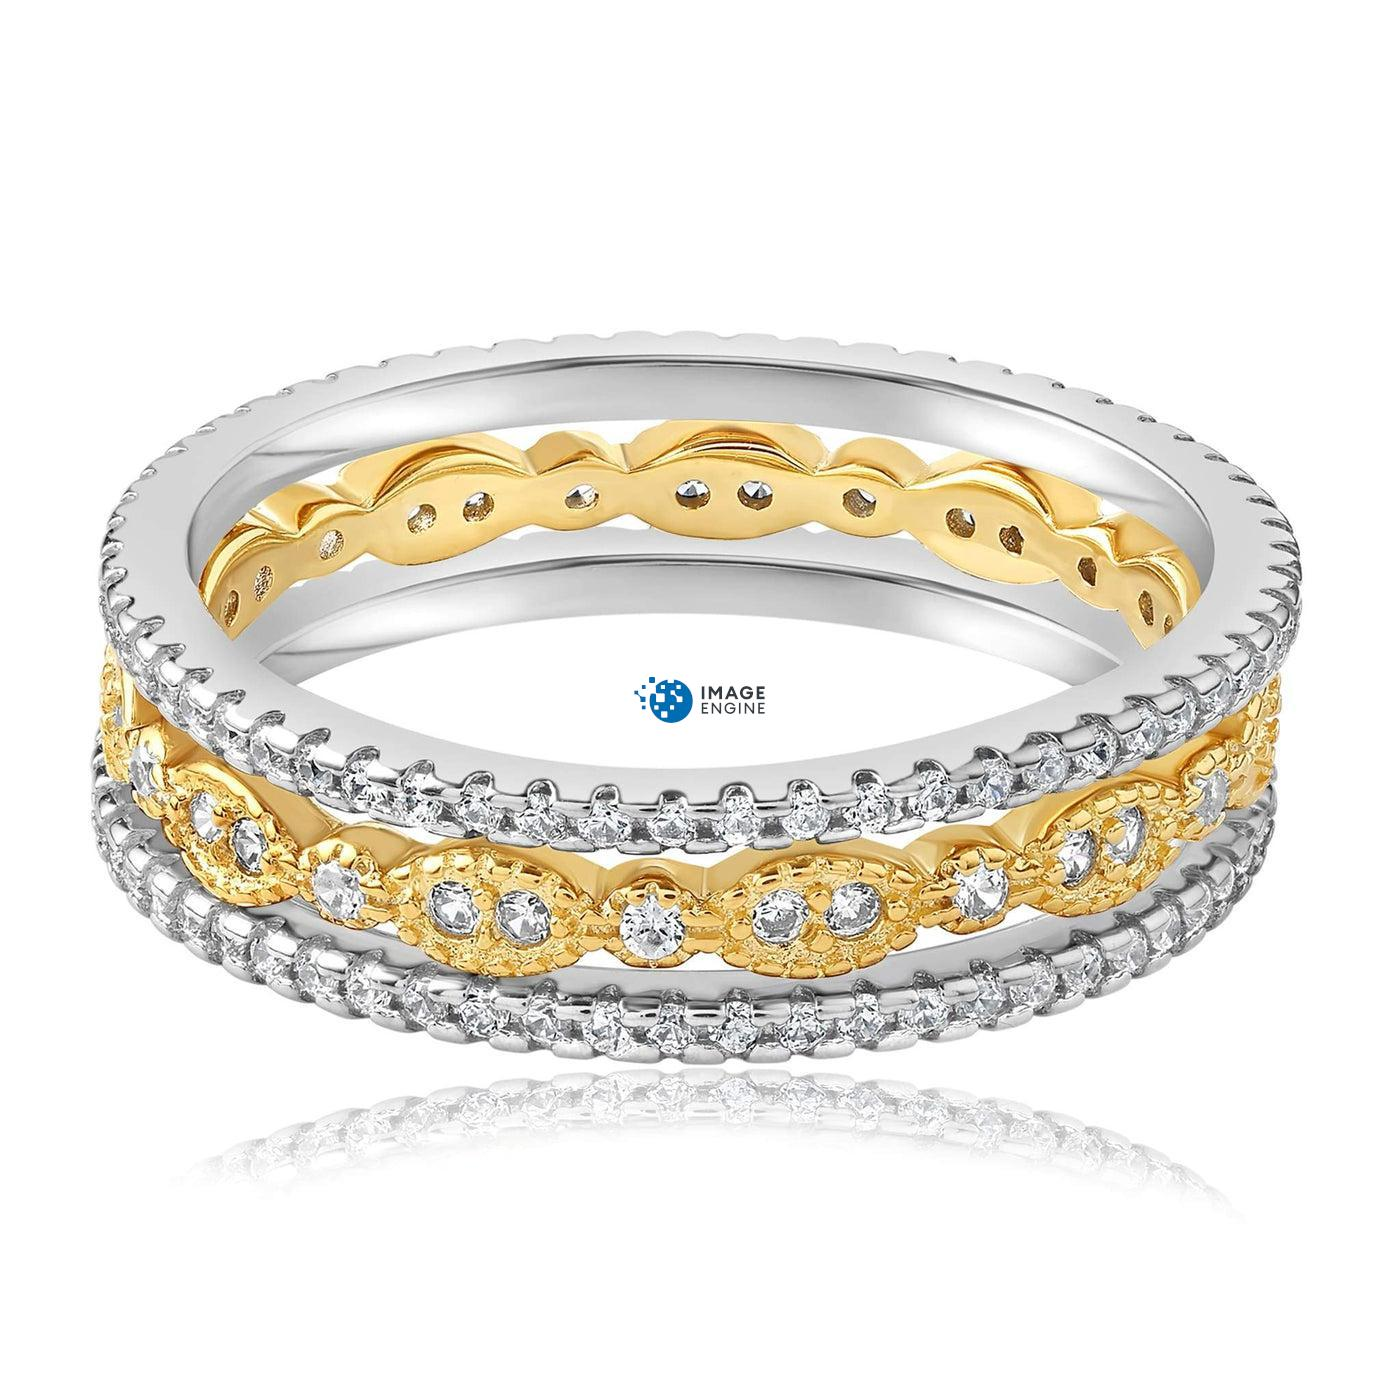 Juliana 3 Ring Set - Front View Facing Down - 18K Yellow Gold Vermeil